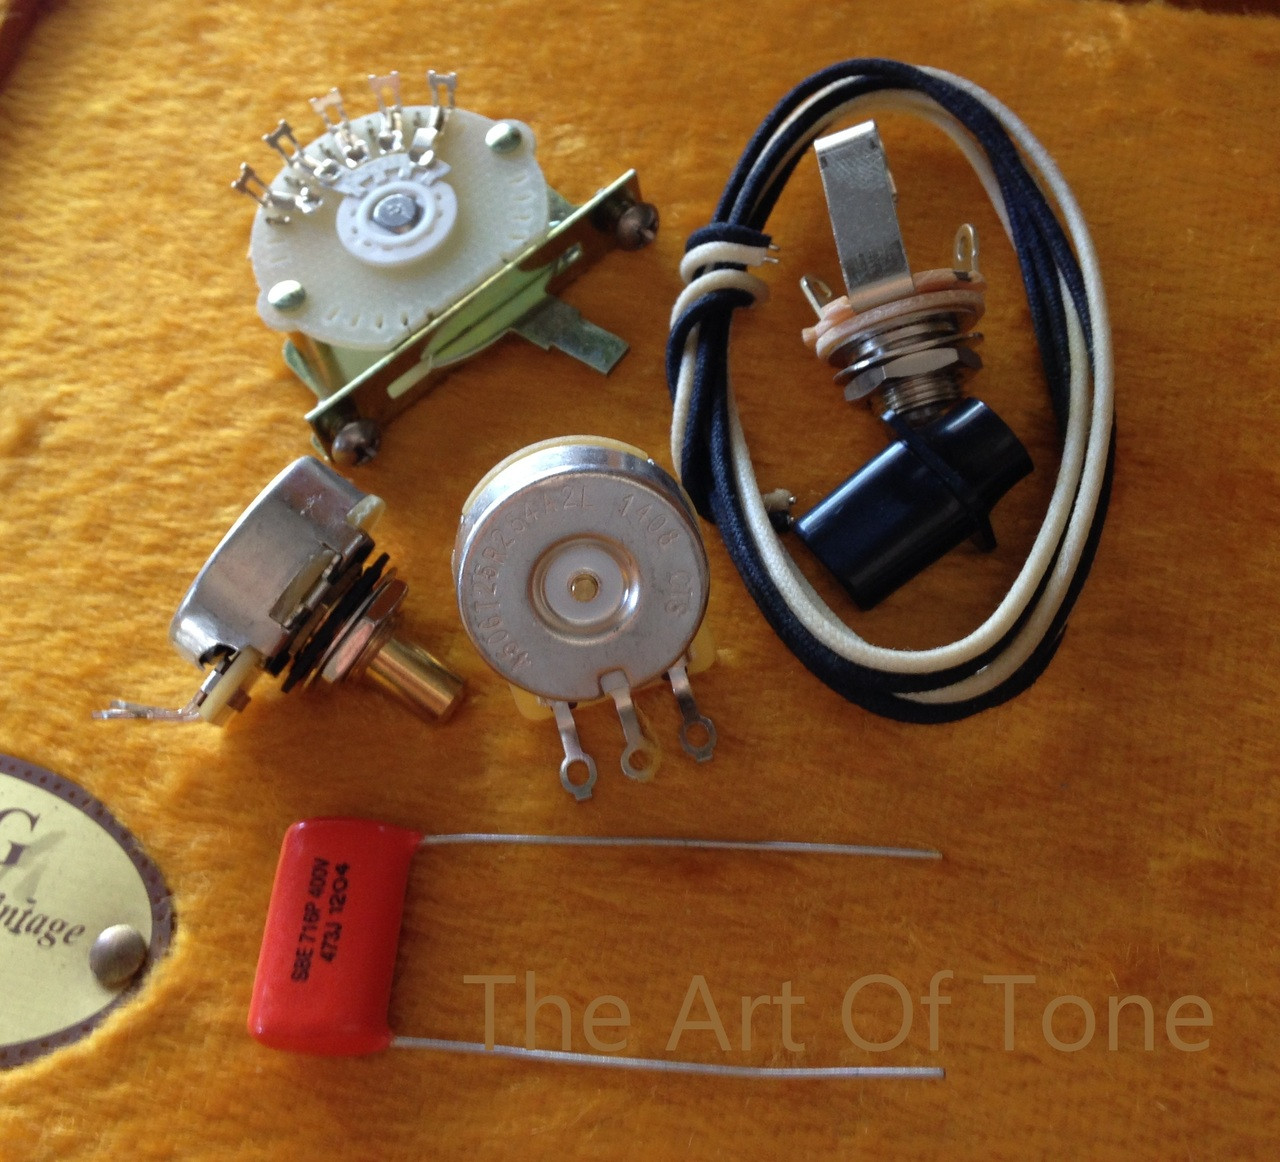 basic wiring kit for telecaster® guitars  deluxe tele 4 way wiring kit telecaster cts 450g pots 047uf orange drop cap